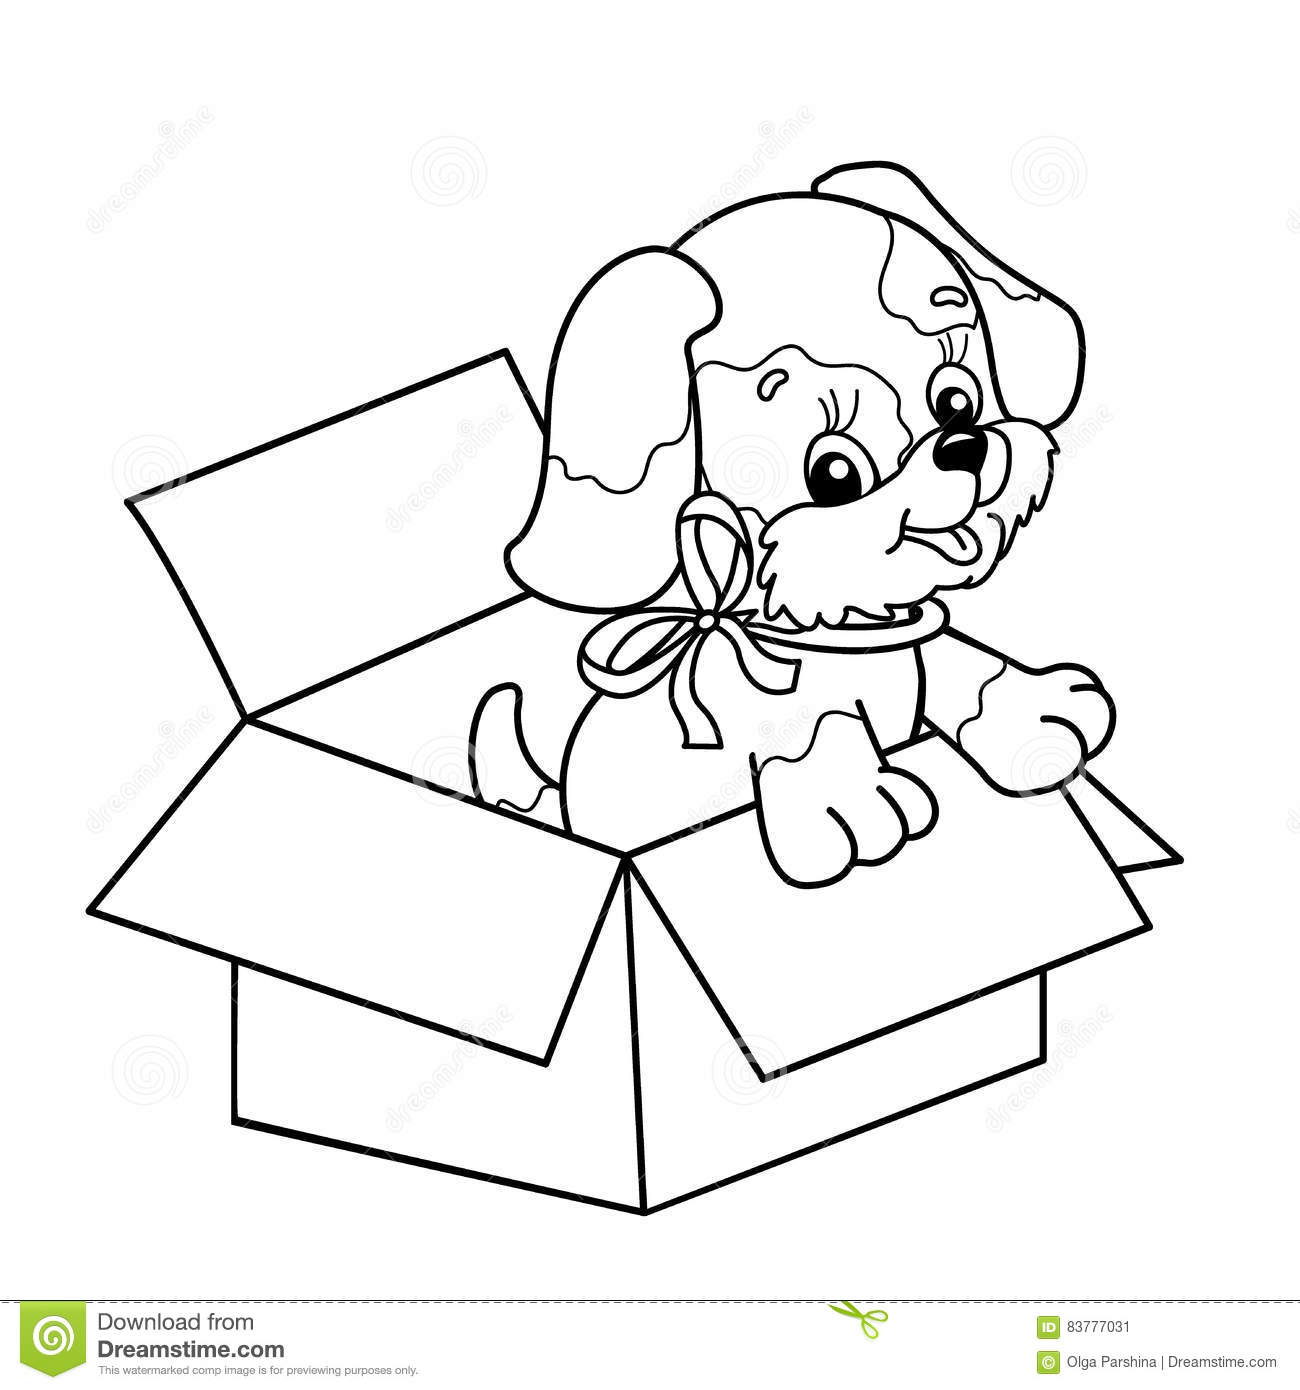 Coloring Page Outline Of Cute Puppy In Box. Cartoon Dog